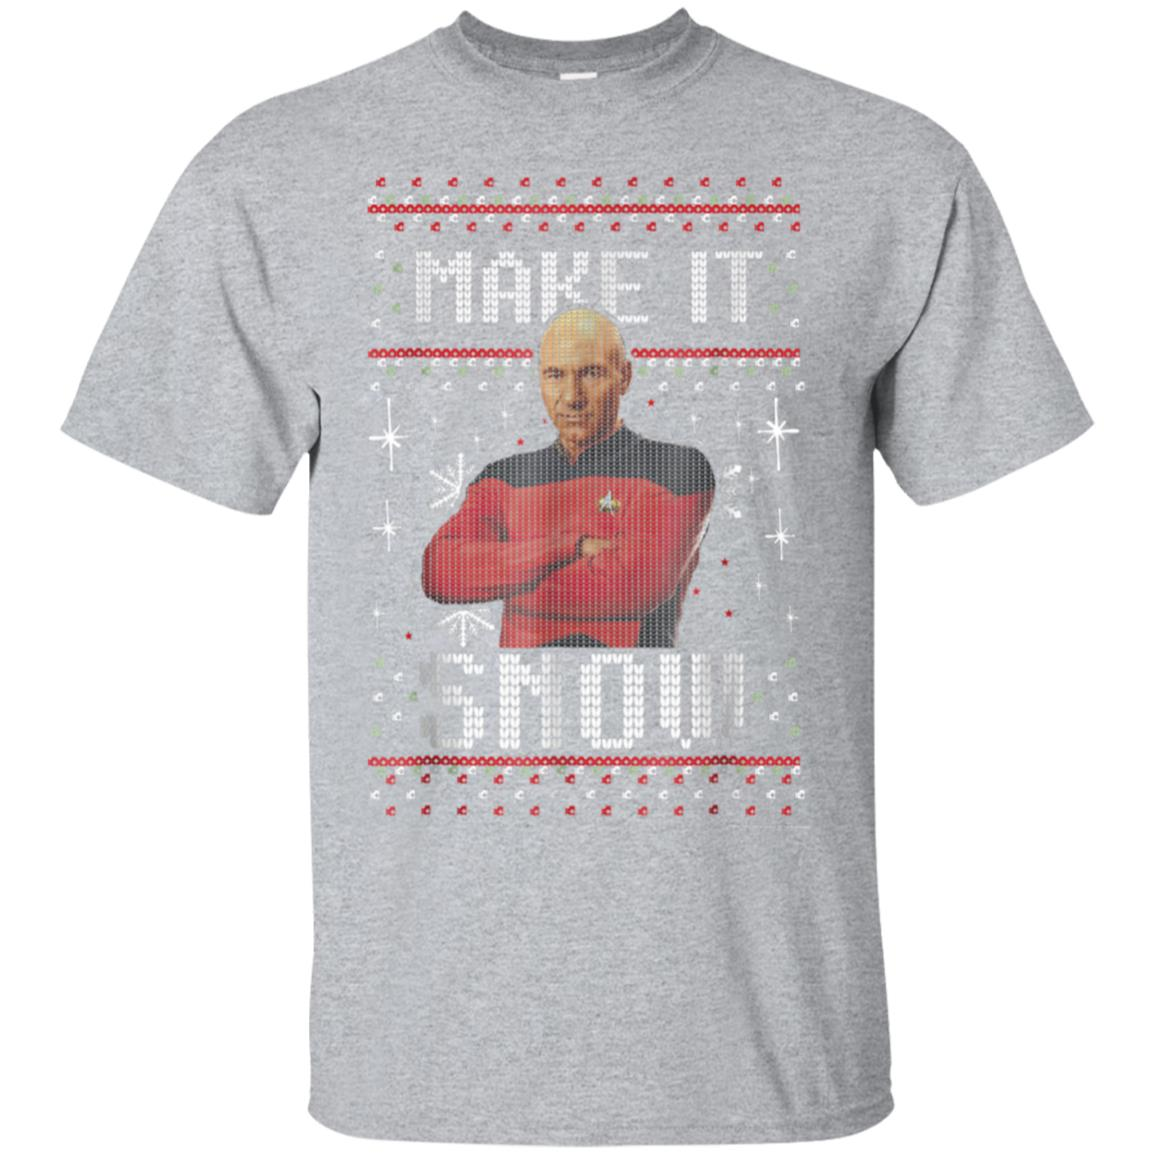 Star Trek Next Generation Make It Snow Graphic T-Shirt 99promocode